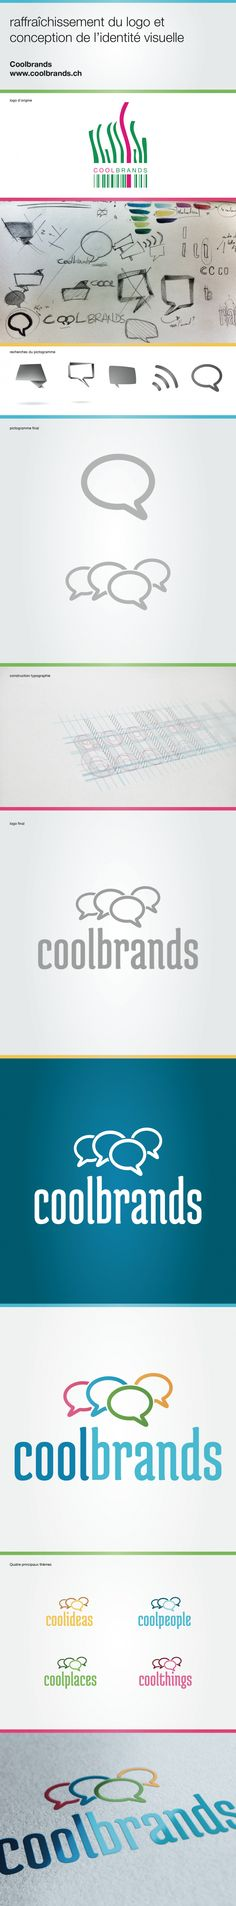 Construction of the new logo of Coolbrands 771deb07bd4